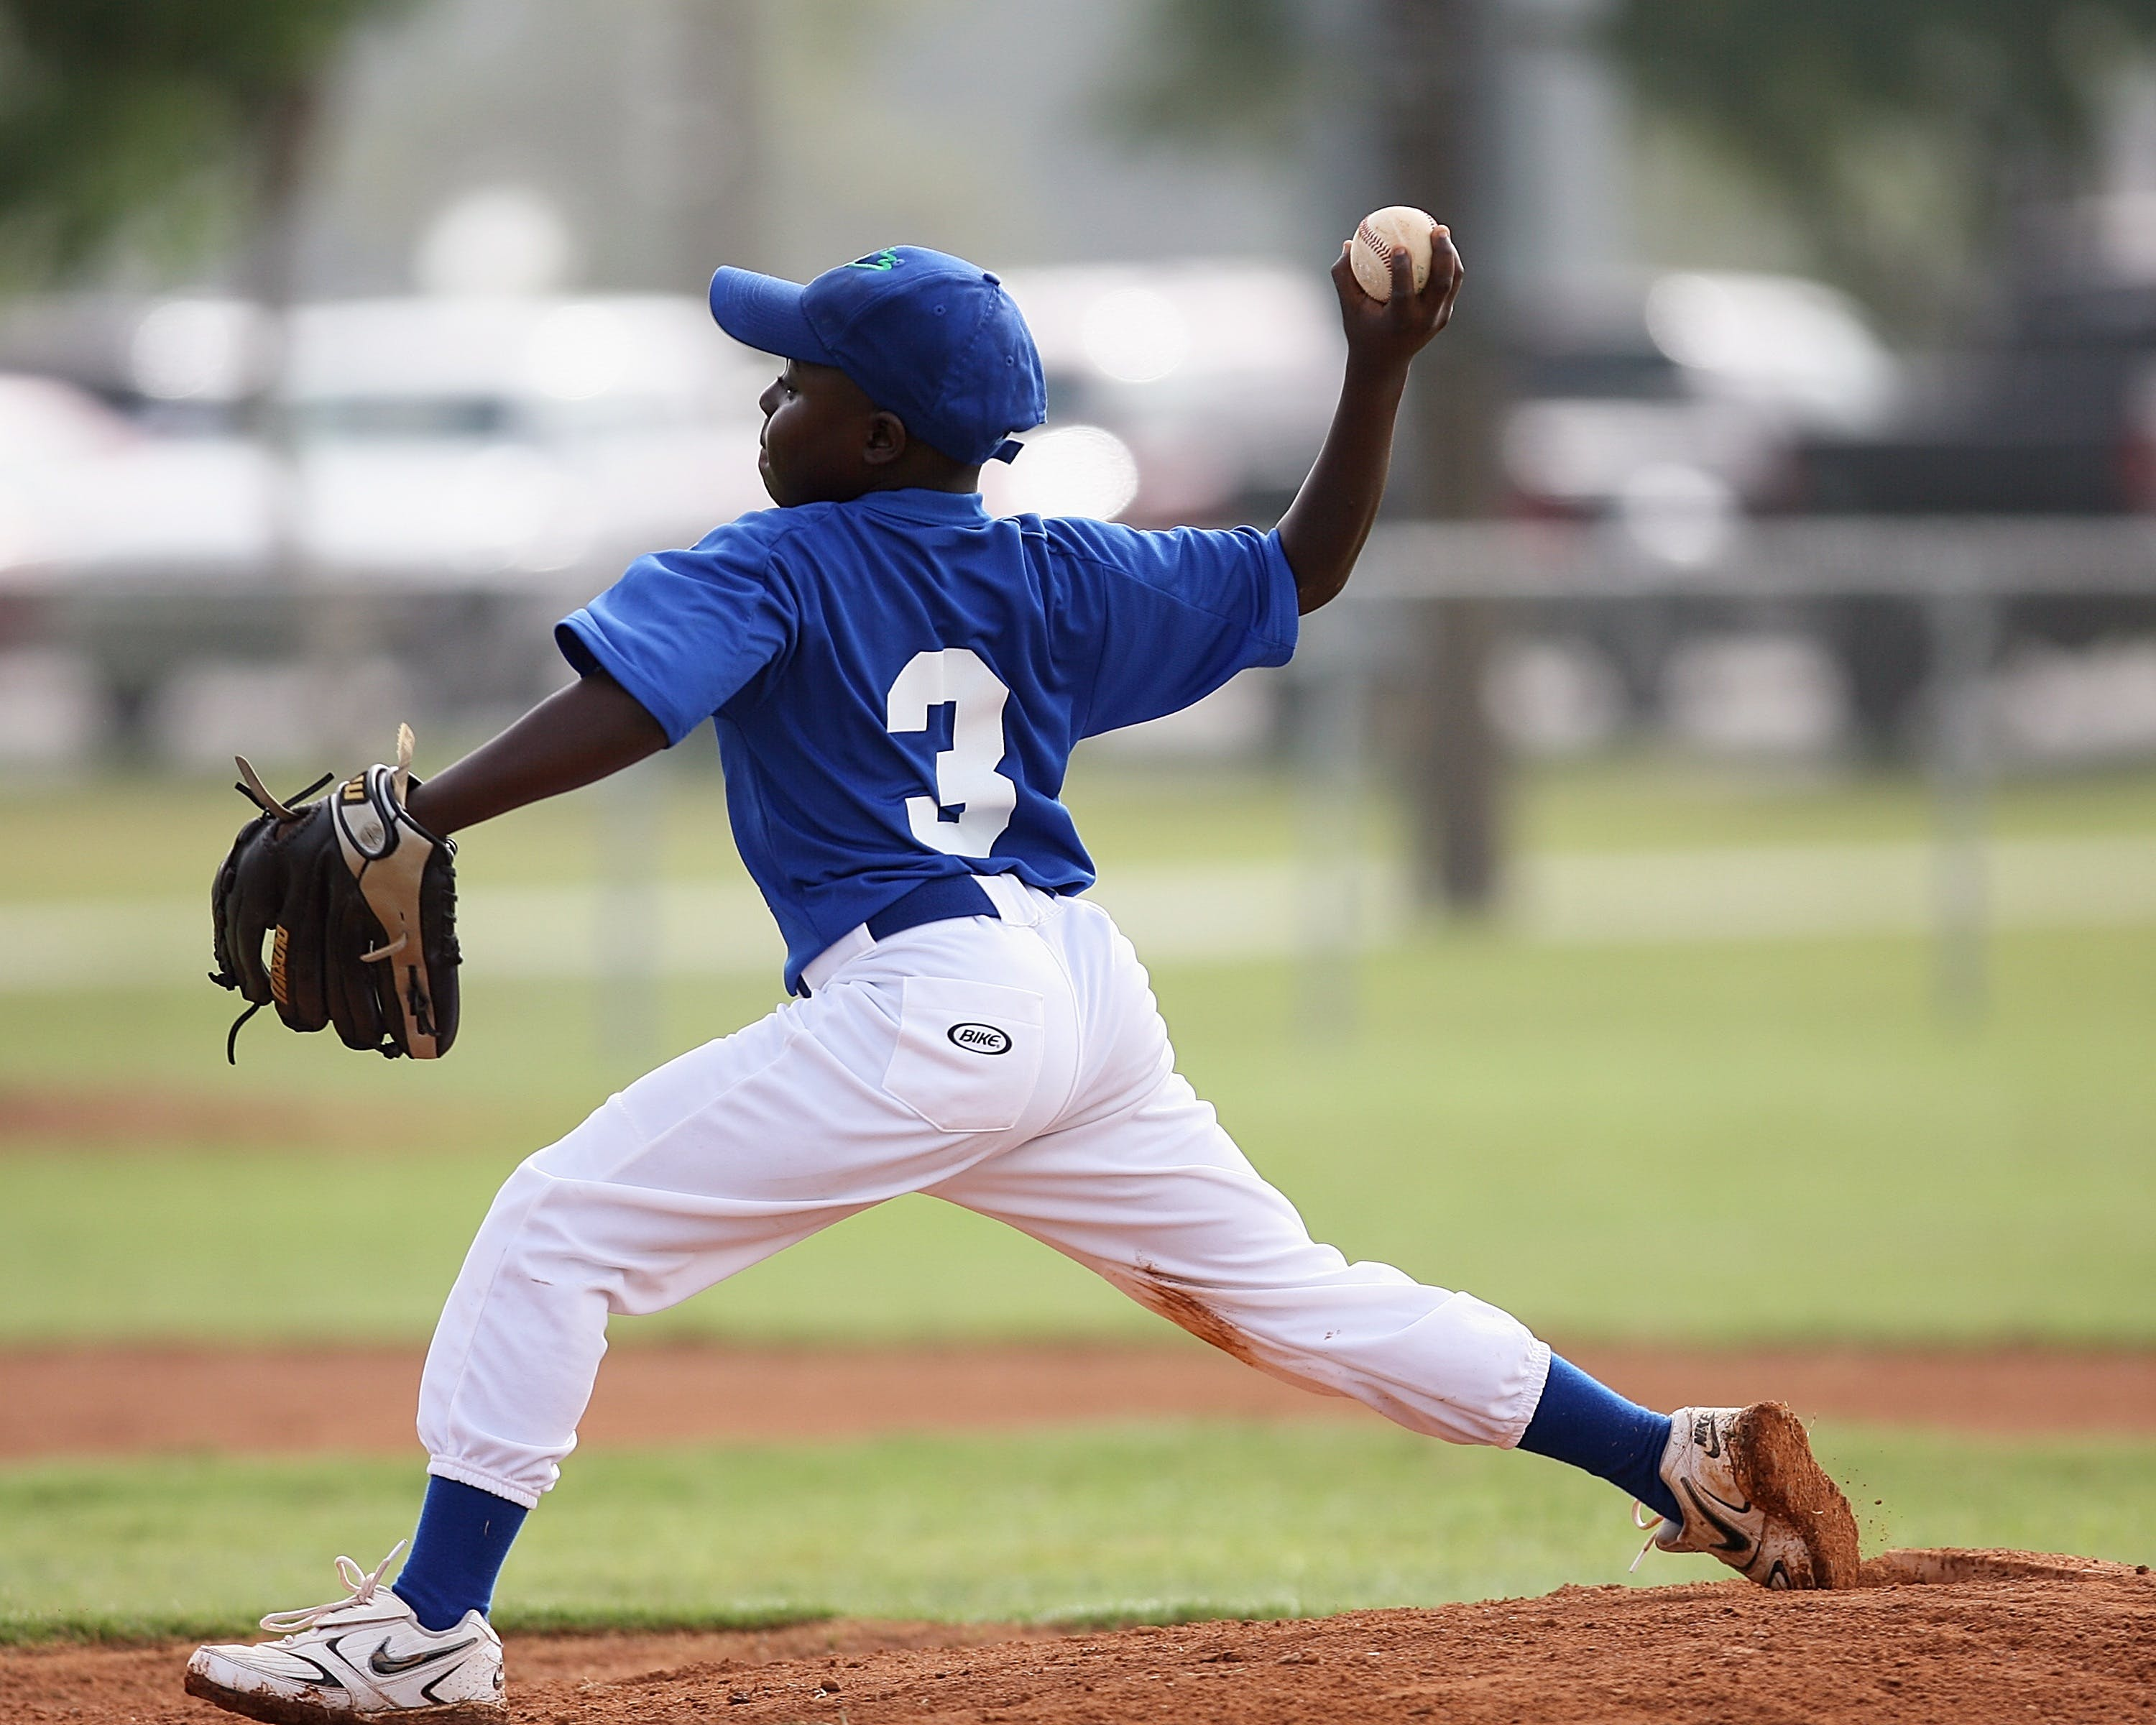 Boy Wearing Blue and White 3 Jersey About to Pitch a Baseball